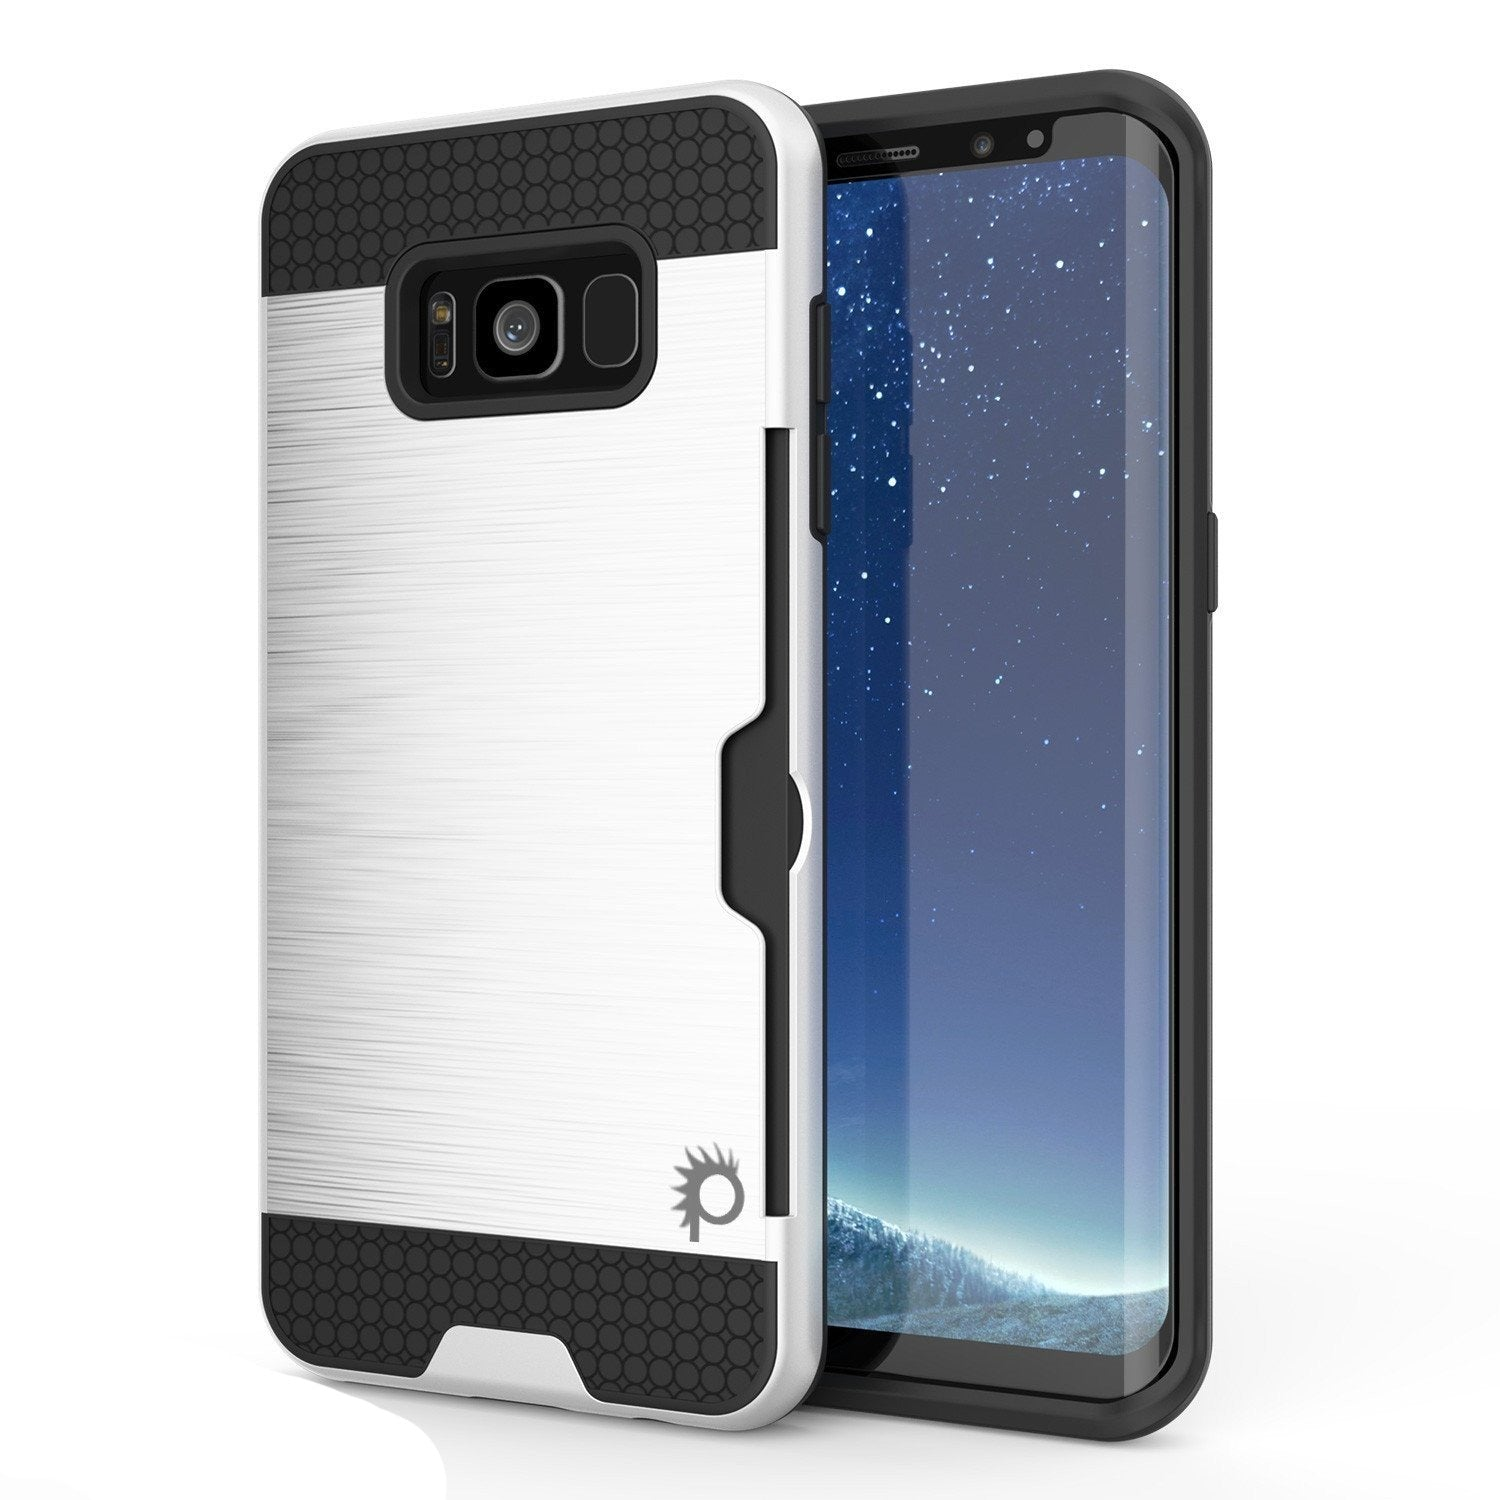 Galaxy S8 Case, PUNKcase [SLOT Series] [Slim Fit] Dual-Layer Armor Cover w/Integrated Anti-Shock System, Credit Card Slot & PUNKSHIELD Screen Protector for Samsung Galaxy S8[White]